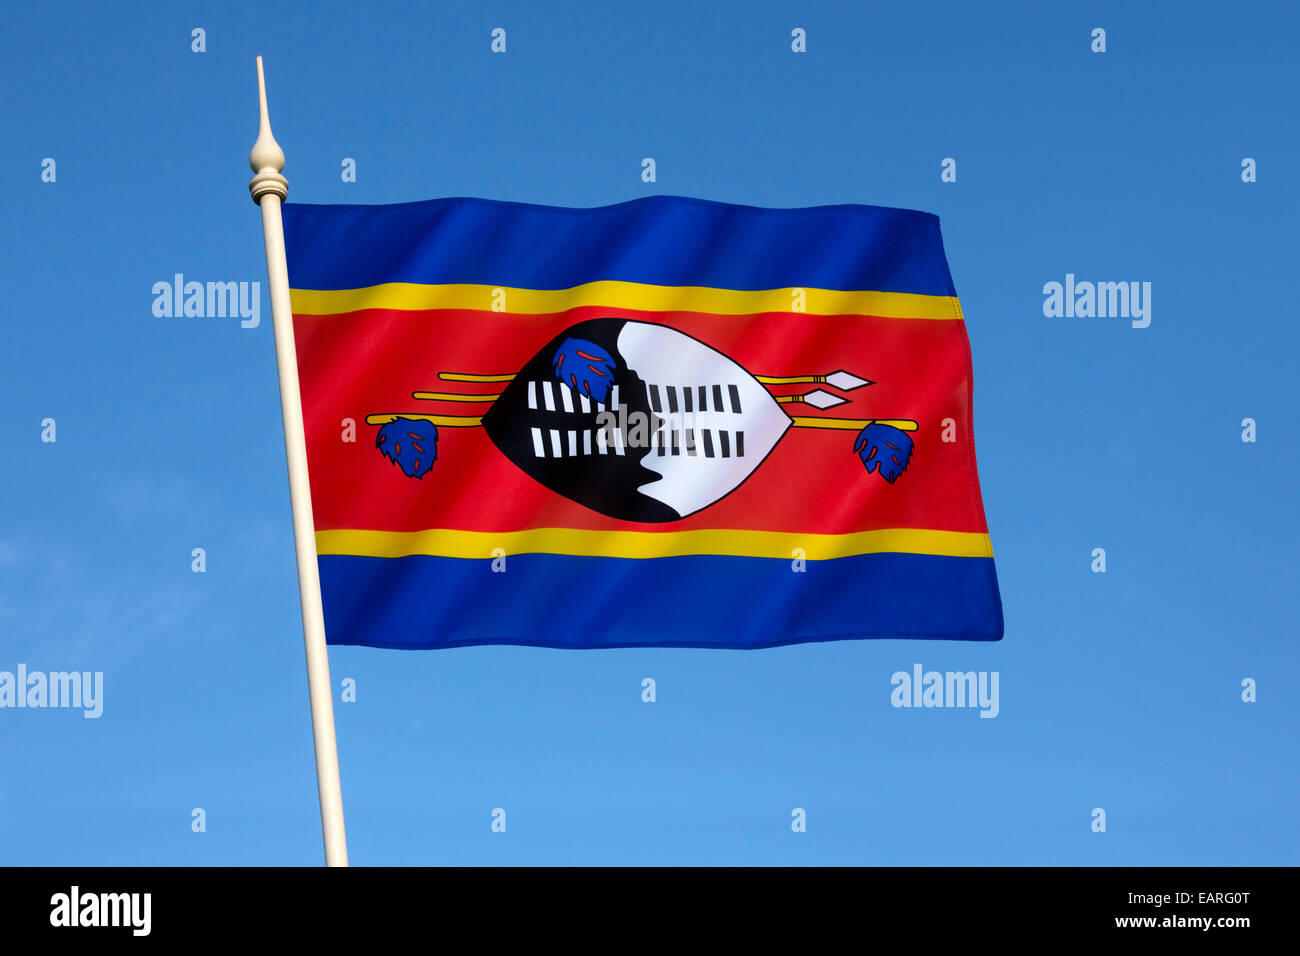 The state and war flag of Swaziland - Stock Image